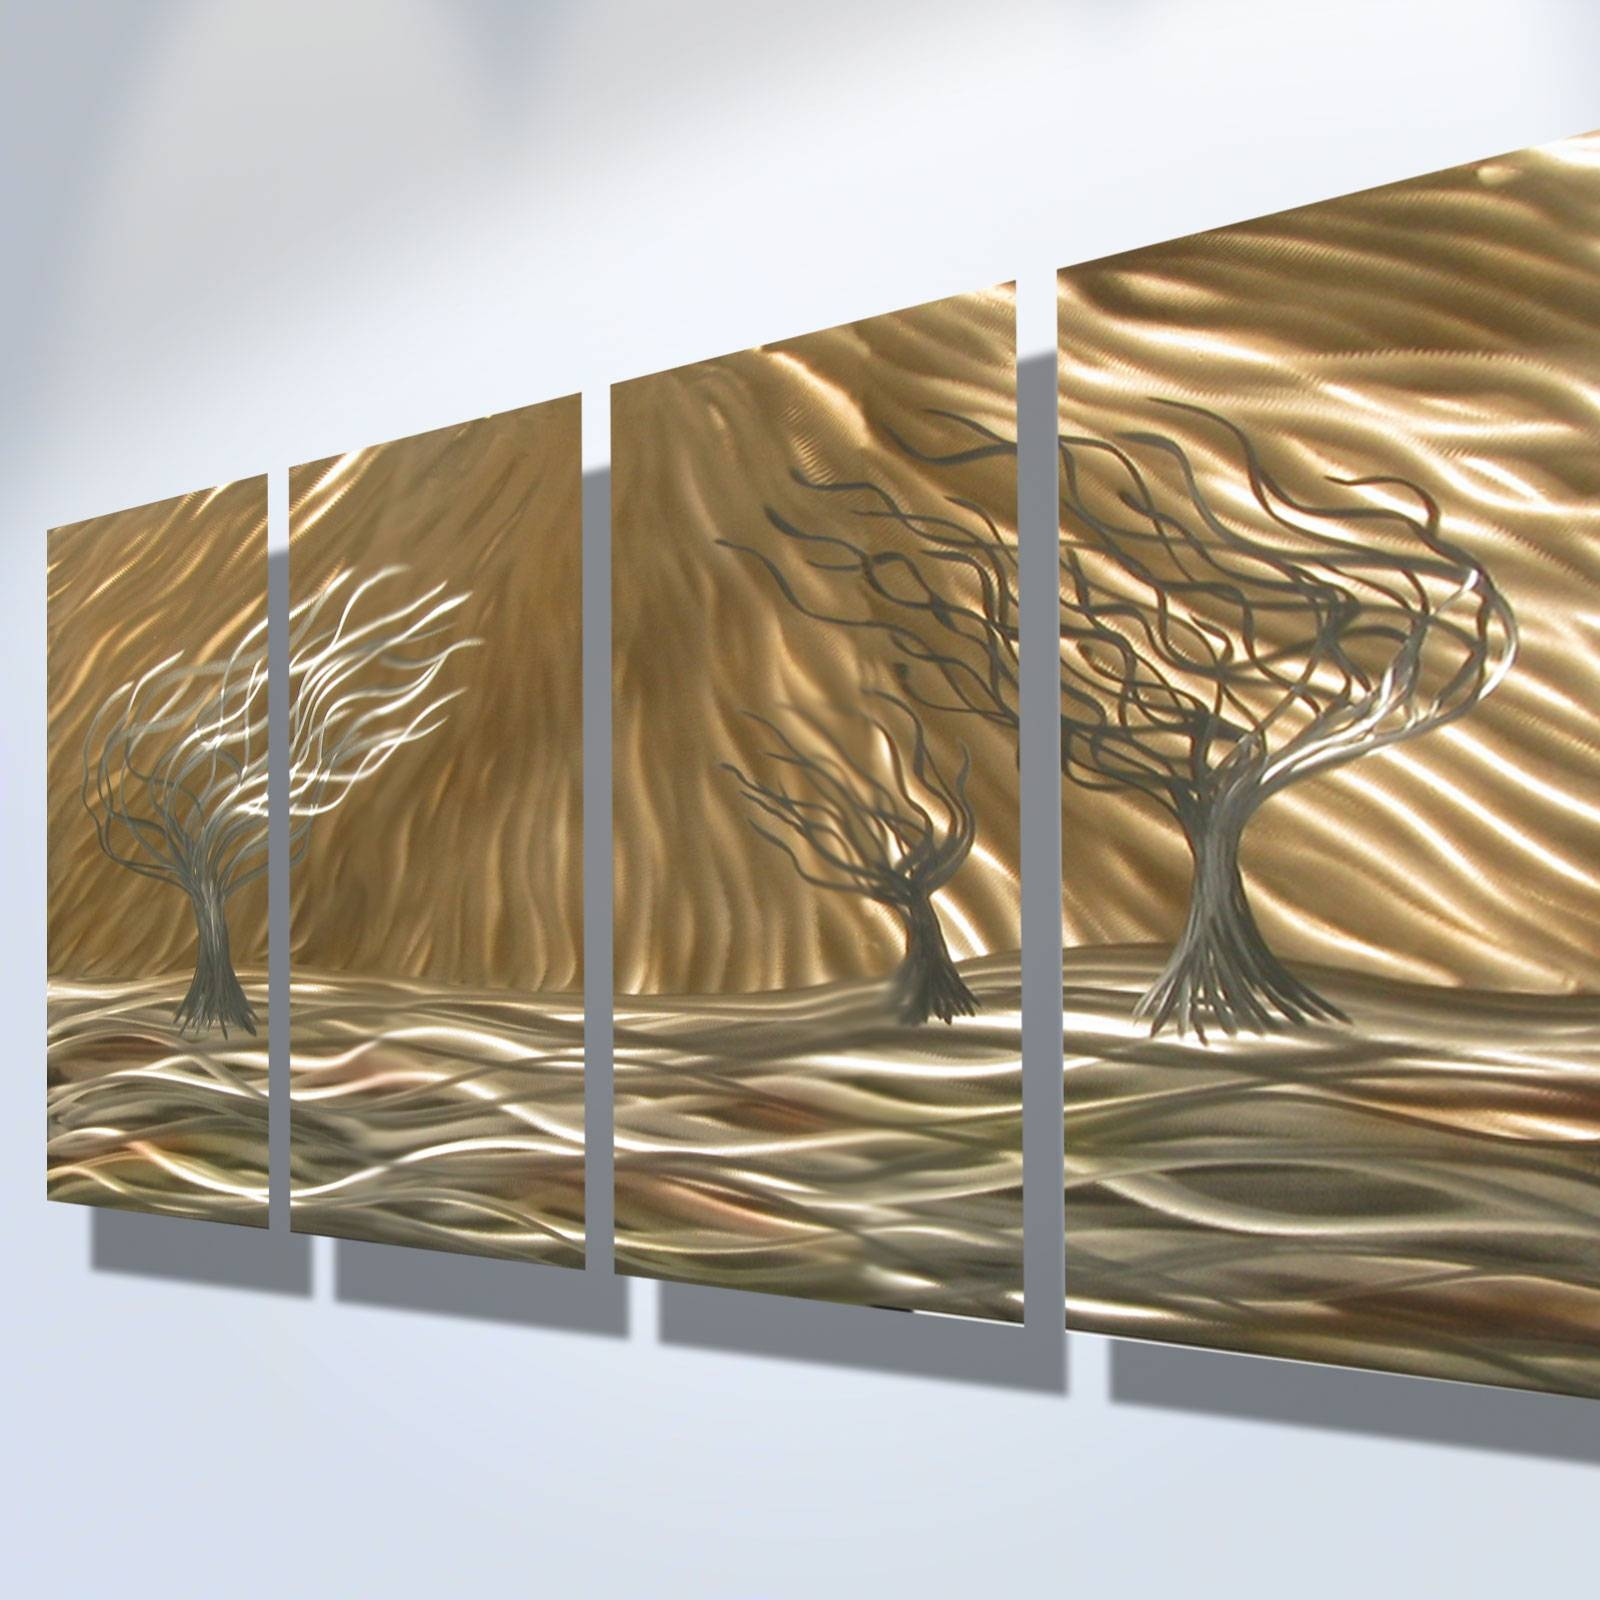 3 Trees 4 Panel – Abstract Metal Wall Art Contemporary Modern Throughout 2018 Bronze Metal Wall Art (View 8 of 20)